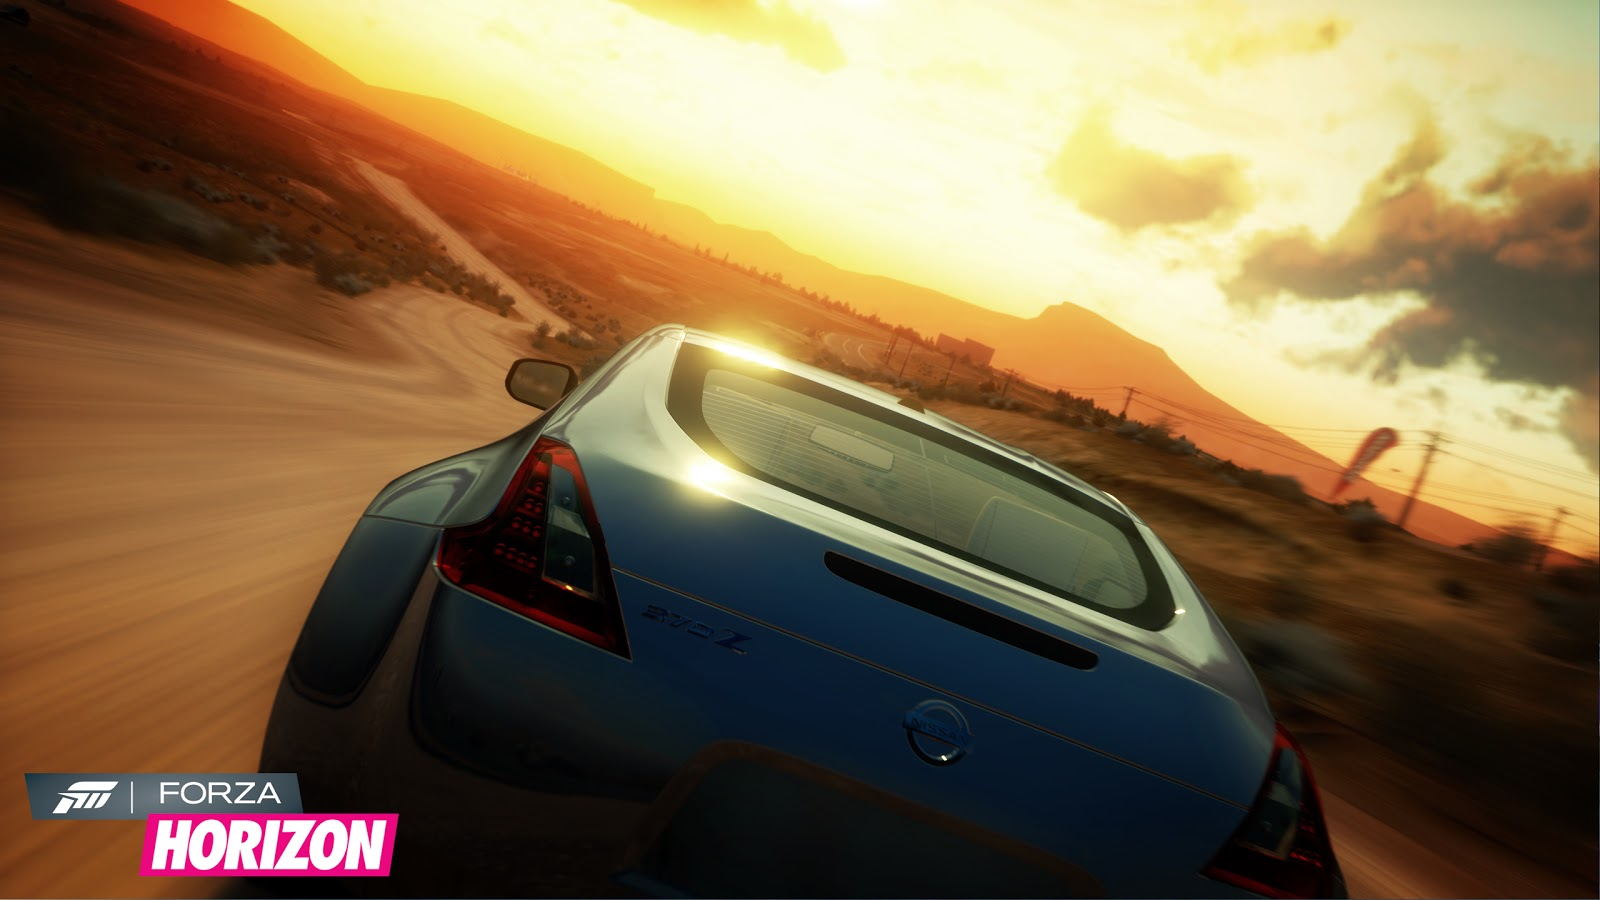 Forza Horizon HD & Widescreen Wallpaper 0.889417955227931